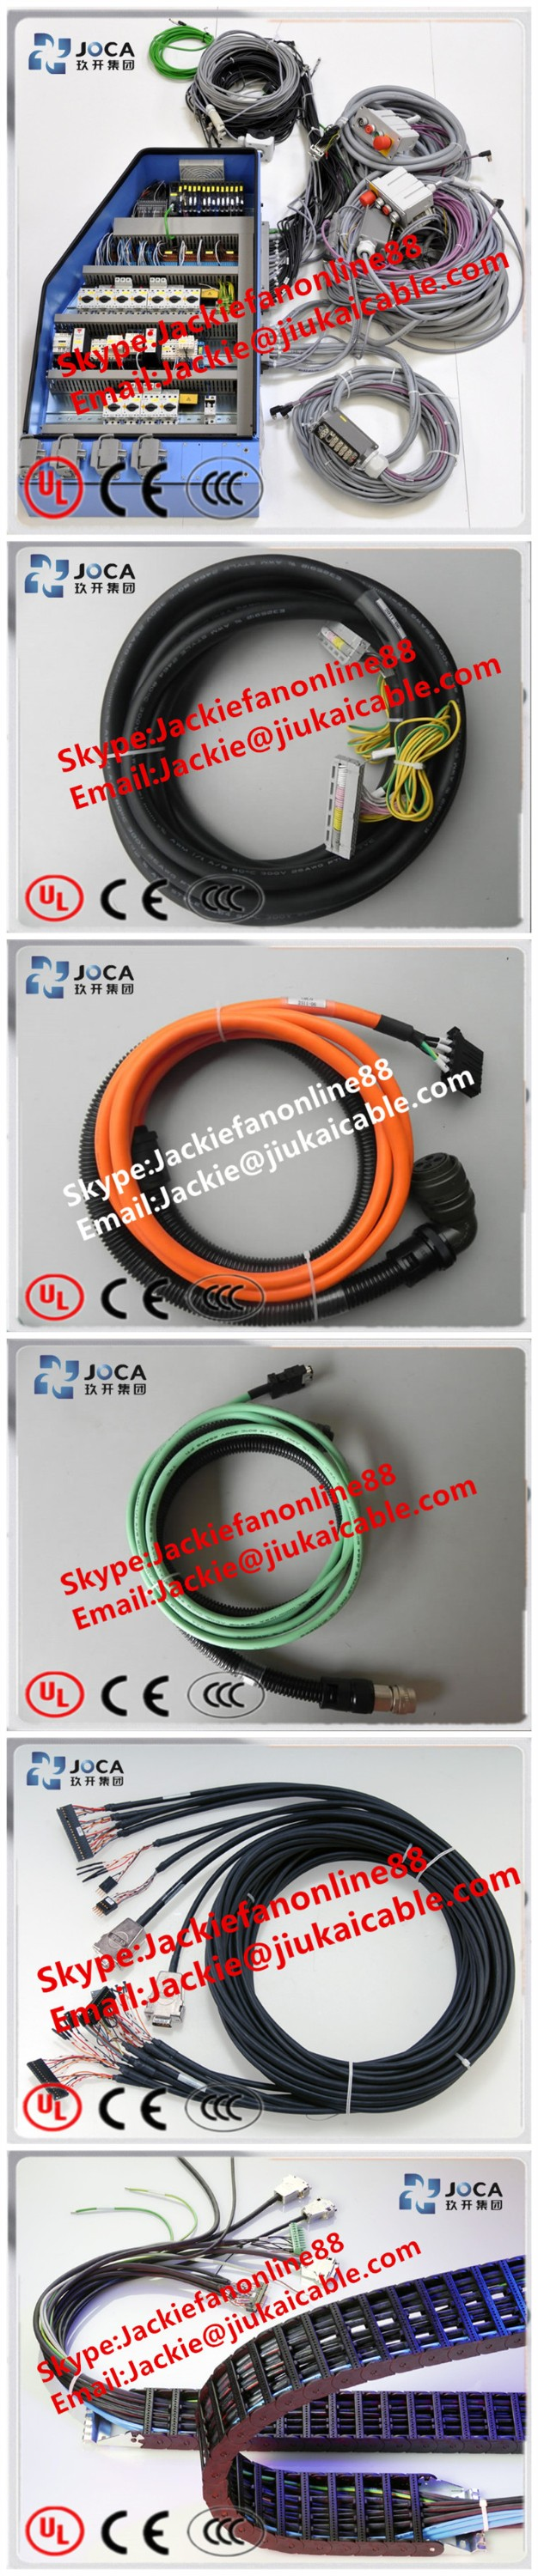 Fire Resistance Cable 4 Sqmm Can Bus J1939 11 Sae Shielded Wiring Harness Shielding Drain